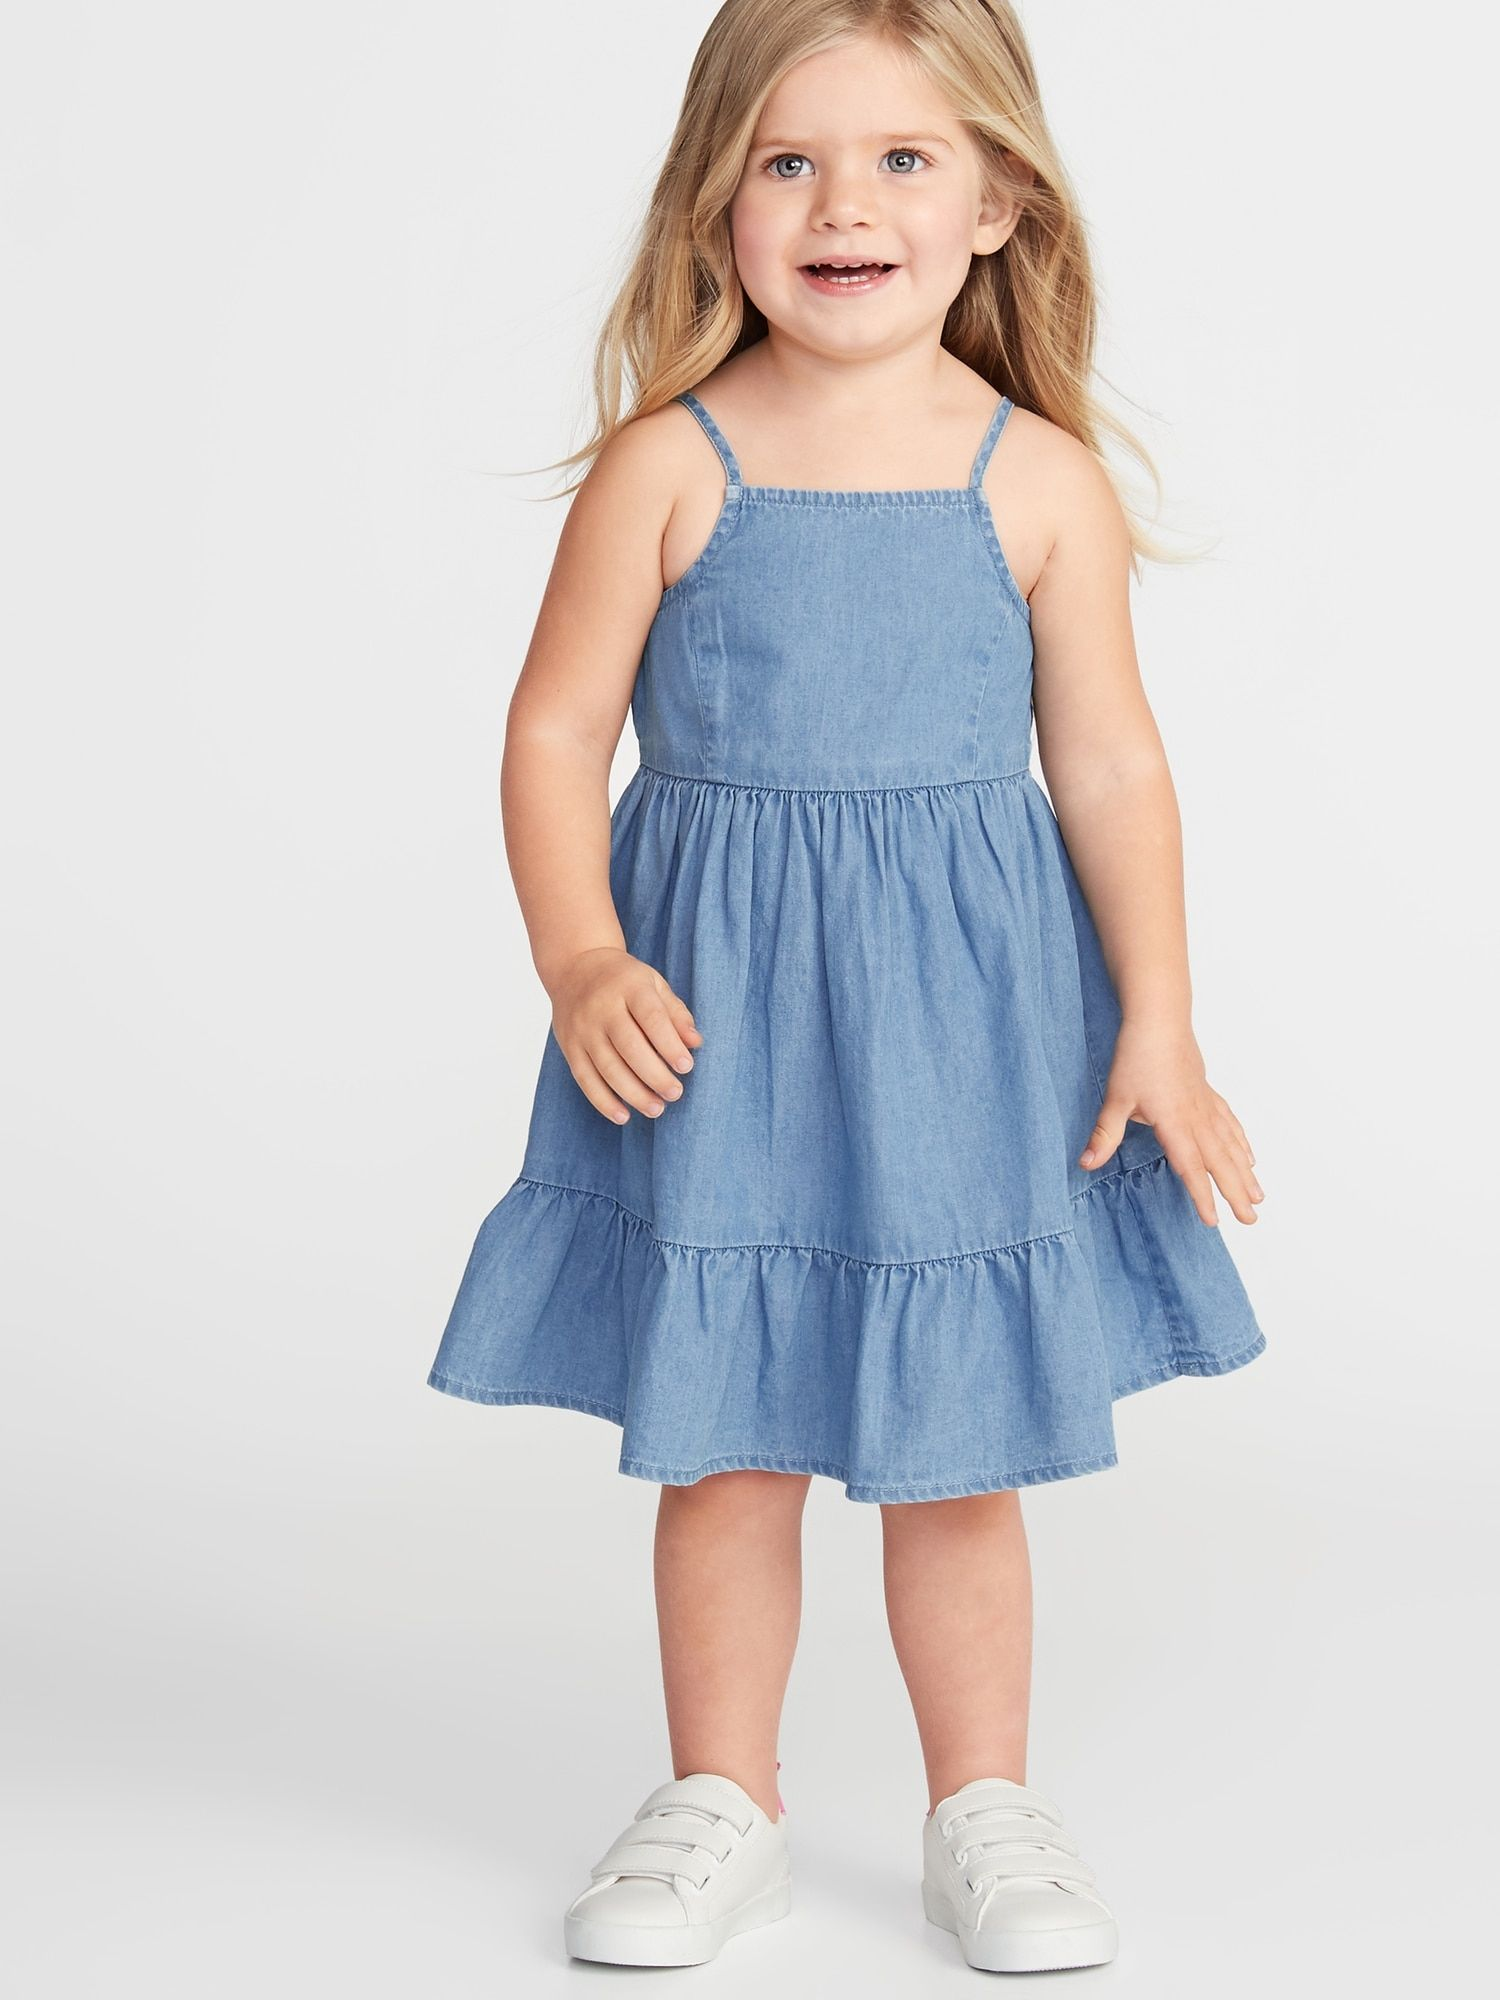 Tiered Chambray Fit Flare Dress For Toddler Girls Old Navy Toddler Girl Dresses Girl Outfits Toddler Dress